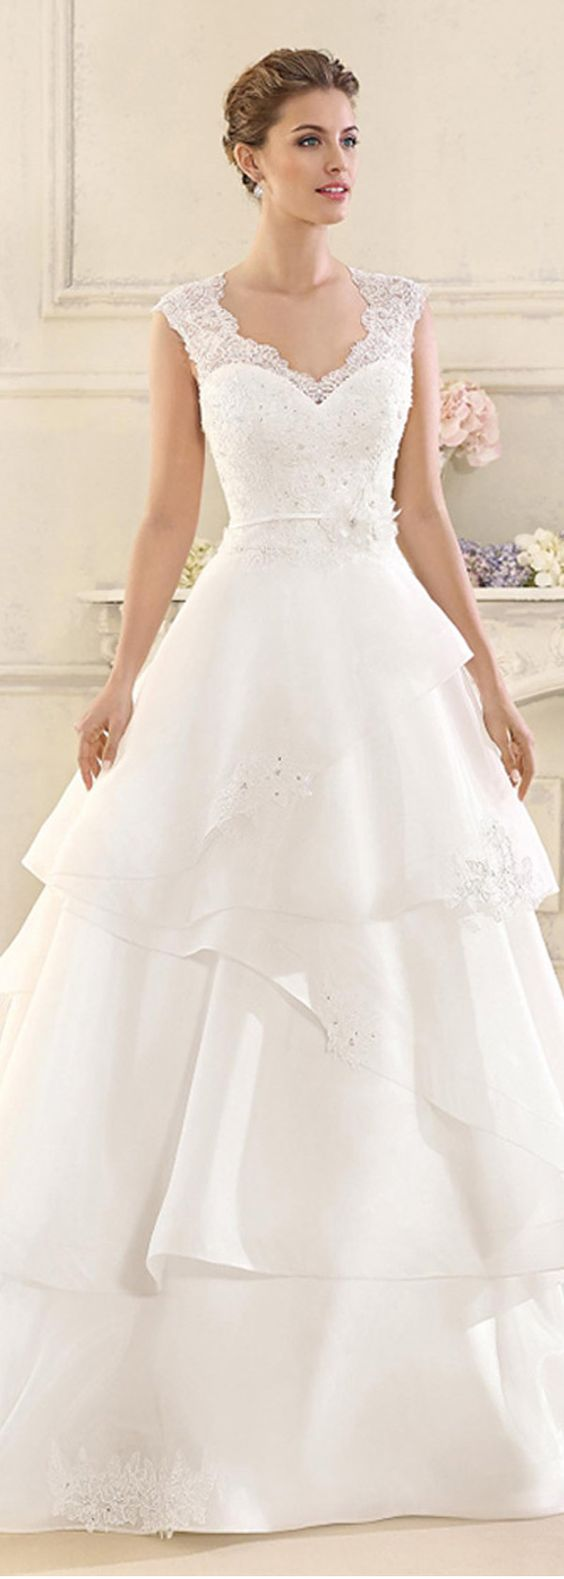 Charming Tulle & Organza Satin V-Neck A-line Wedding Dresses With Beaded Lace Appliques